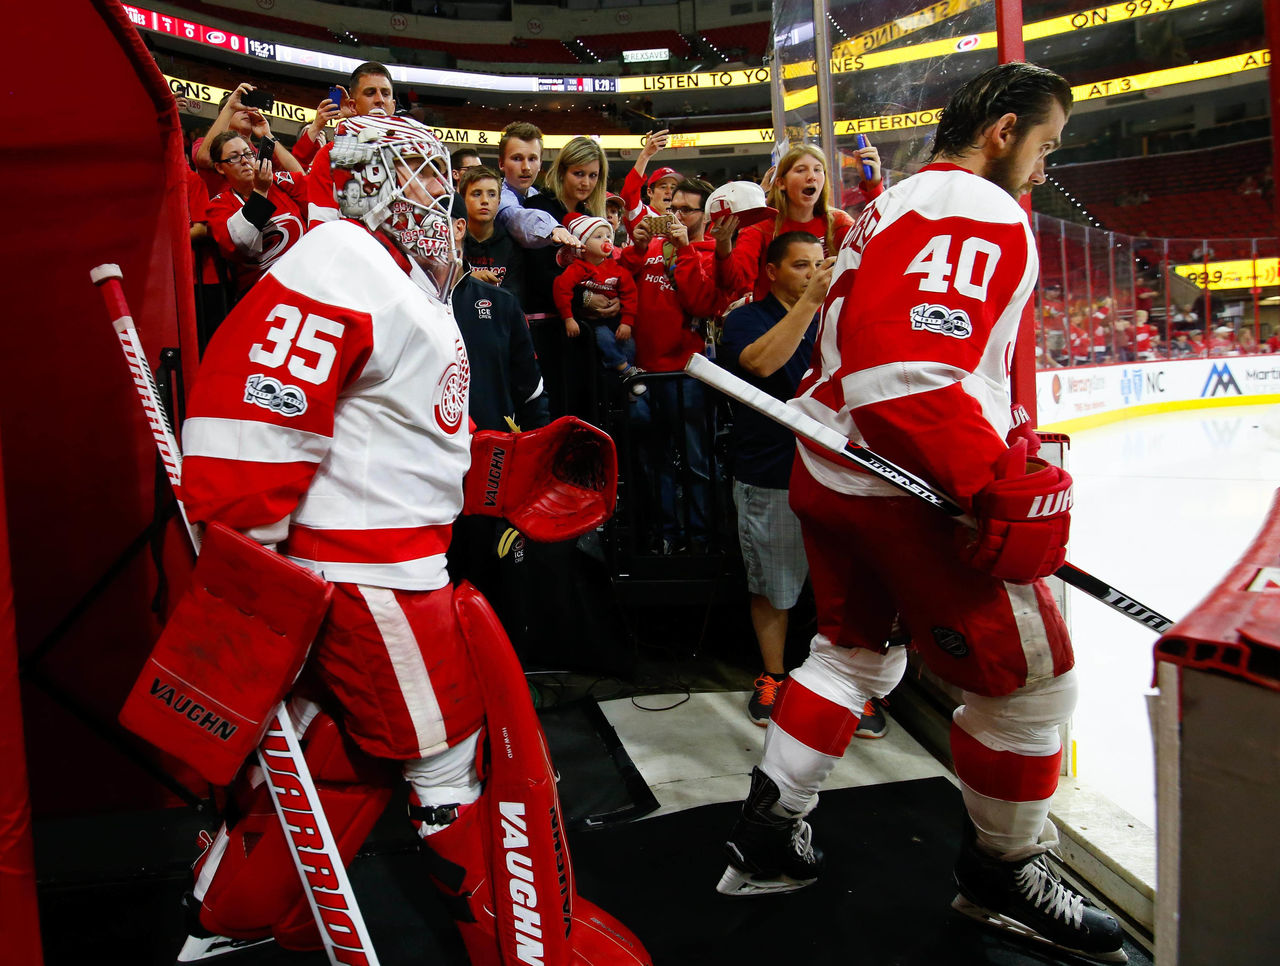 Cropped_2017-03-28t032457z_446529416_nocid_rtrmadp_3_nhl-detroit-red-wings-at-carolina-hurricanes